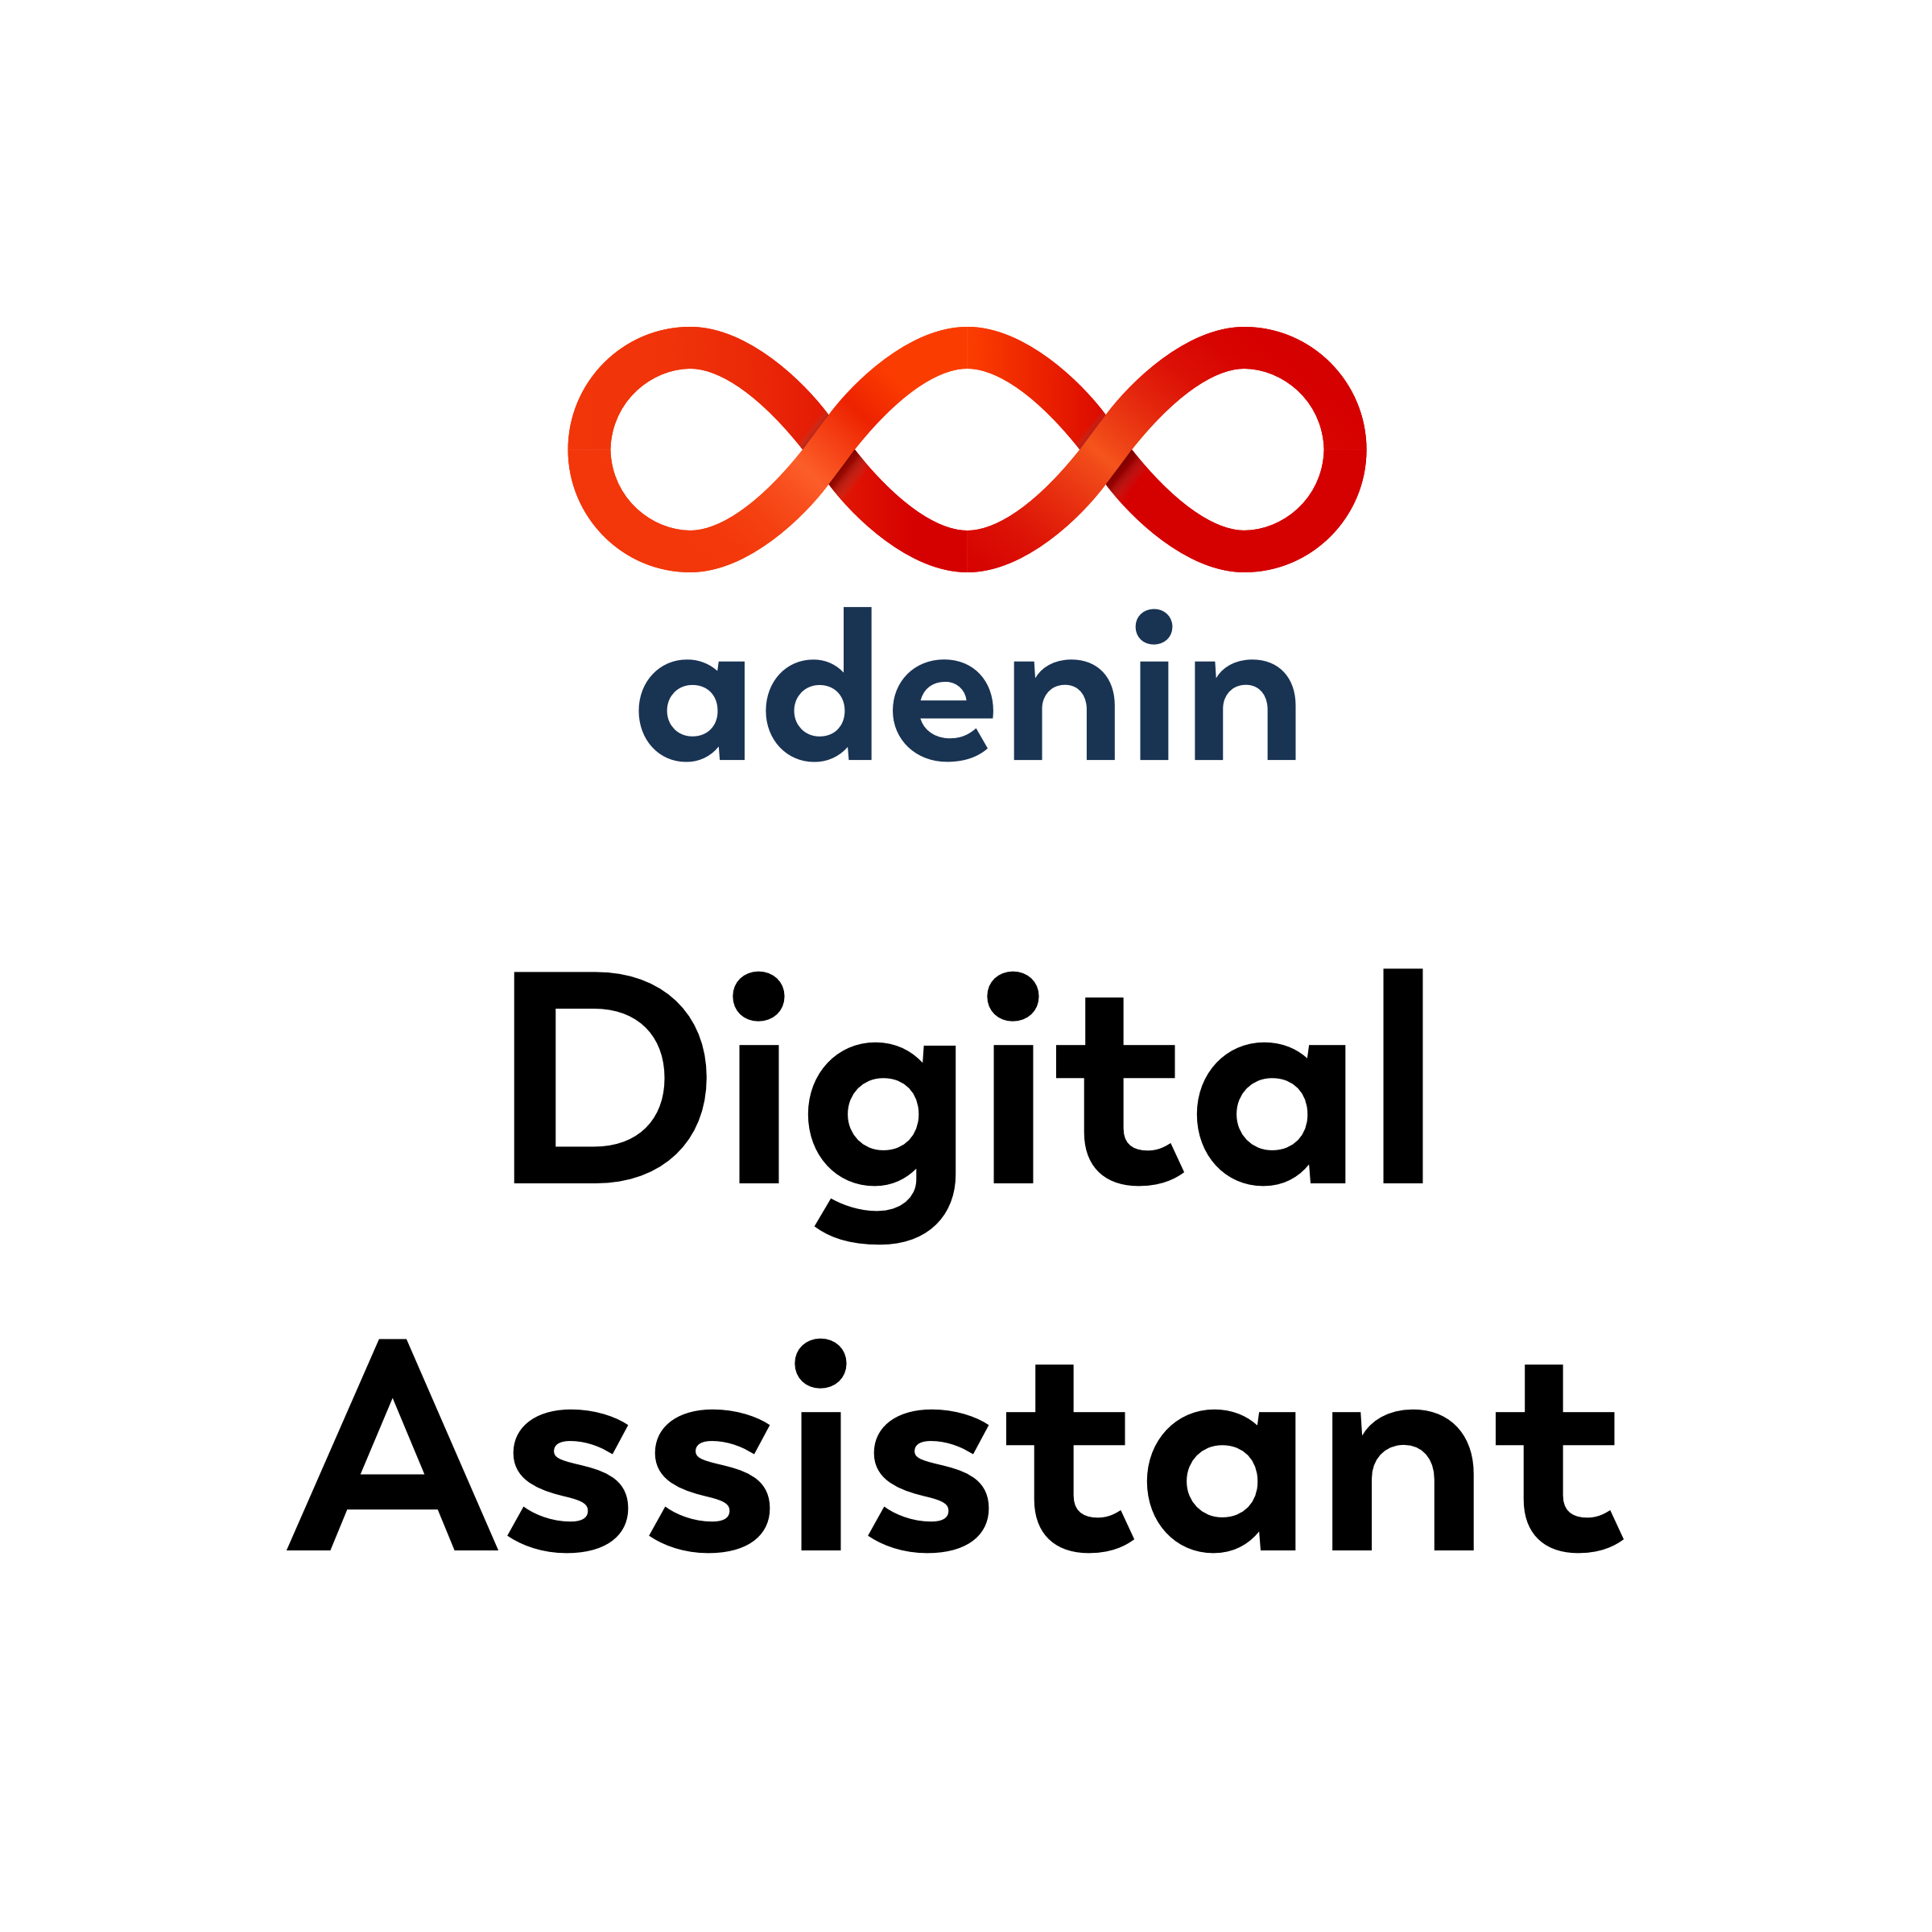 Digital Assistant